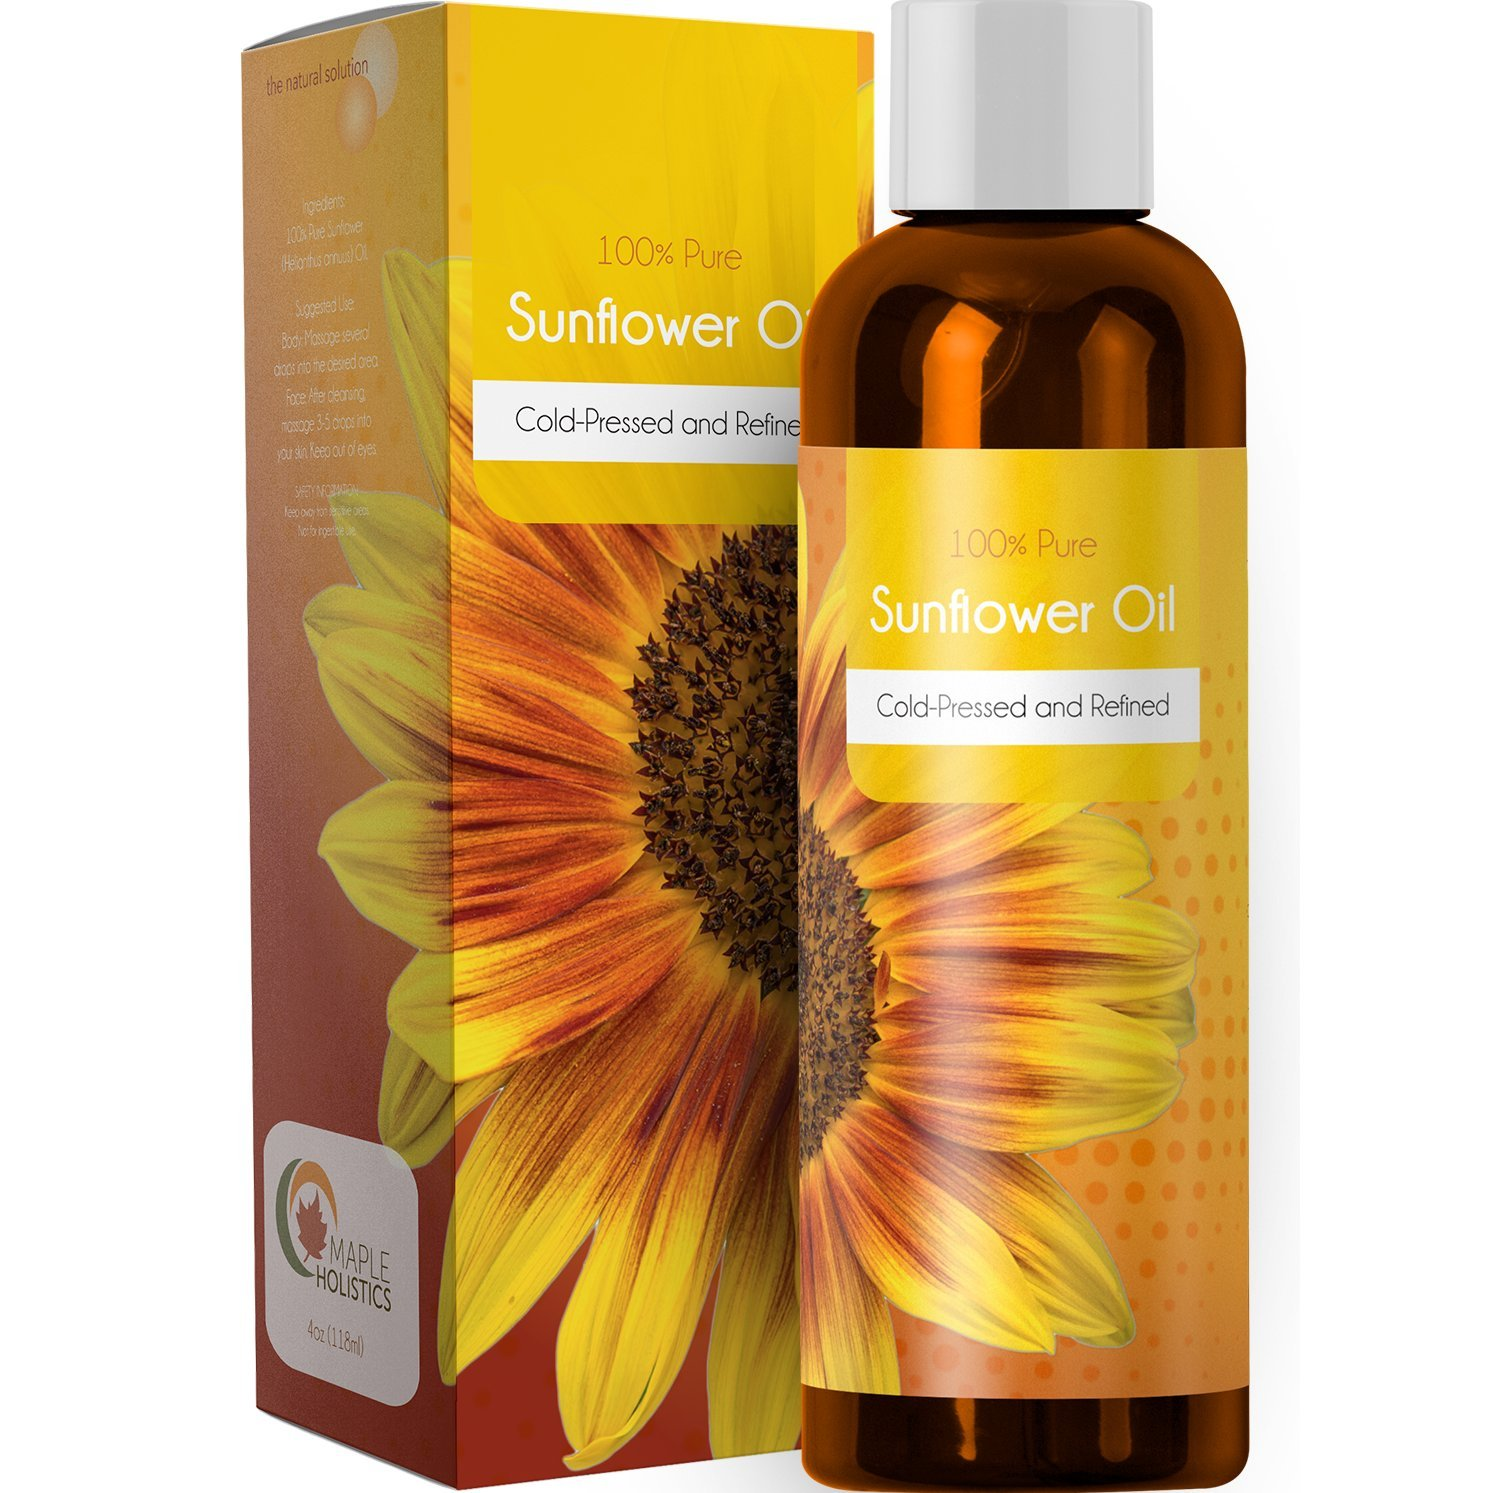 100% Pure Sunflower Seed Oil Anti-Aging Natural Skin Care and Hair Conditioner Health Beauty Carrier Oil for Aromatherapy Essential Oils Massage Therapy Oil with Antioxidant Vitamin E Moisturizer Maple Holistics